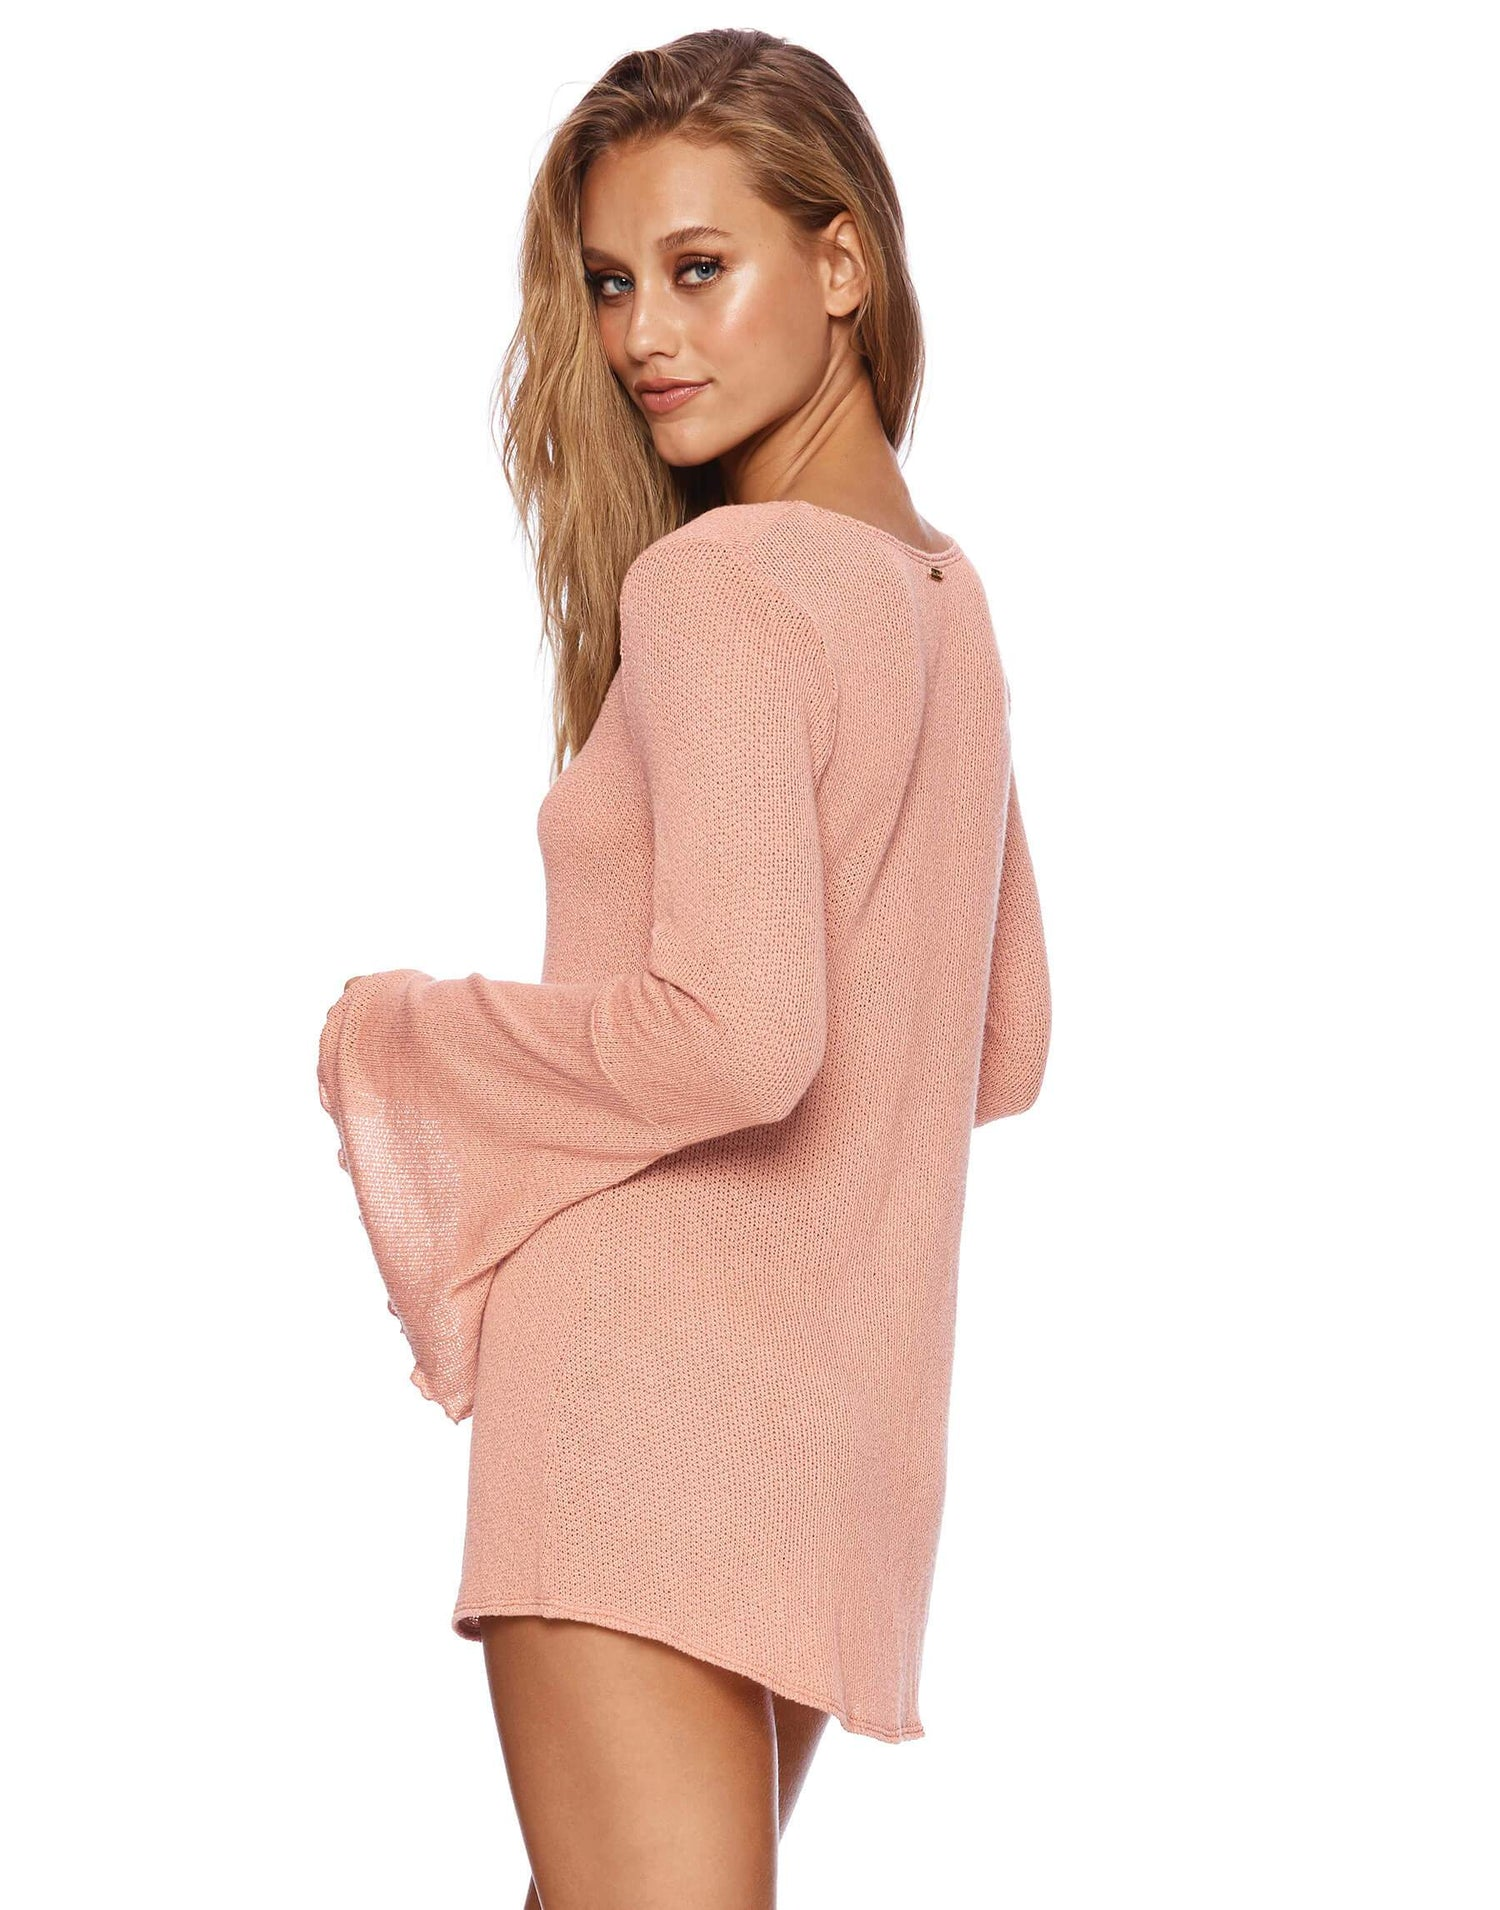 Annika Pink Bell Sleeved Top  - side view